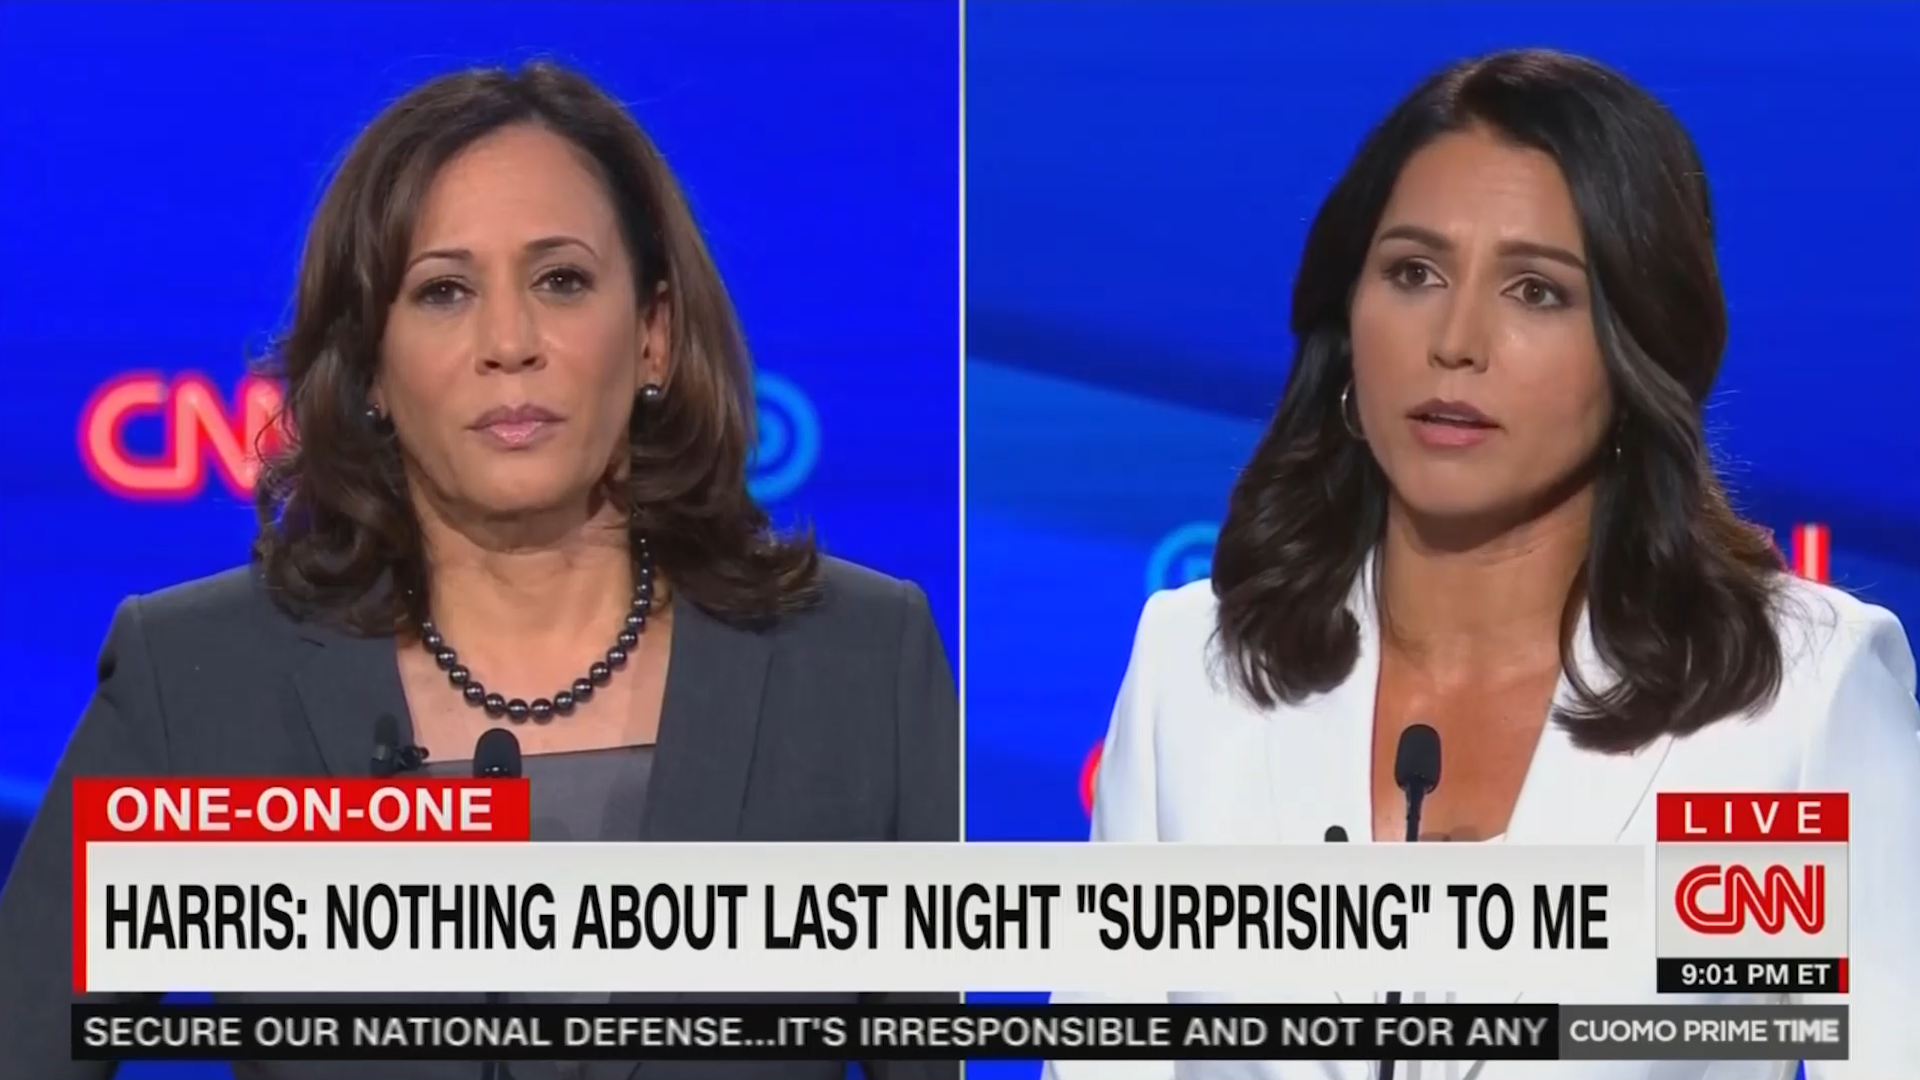 Tulsi Gabbard claims Kamala Harris campaign using cheap smears